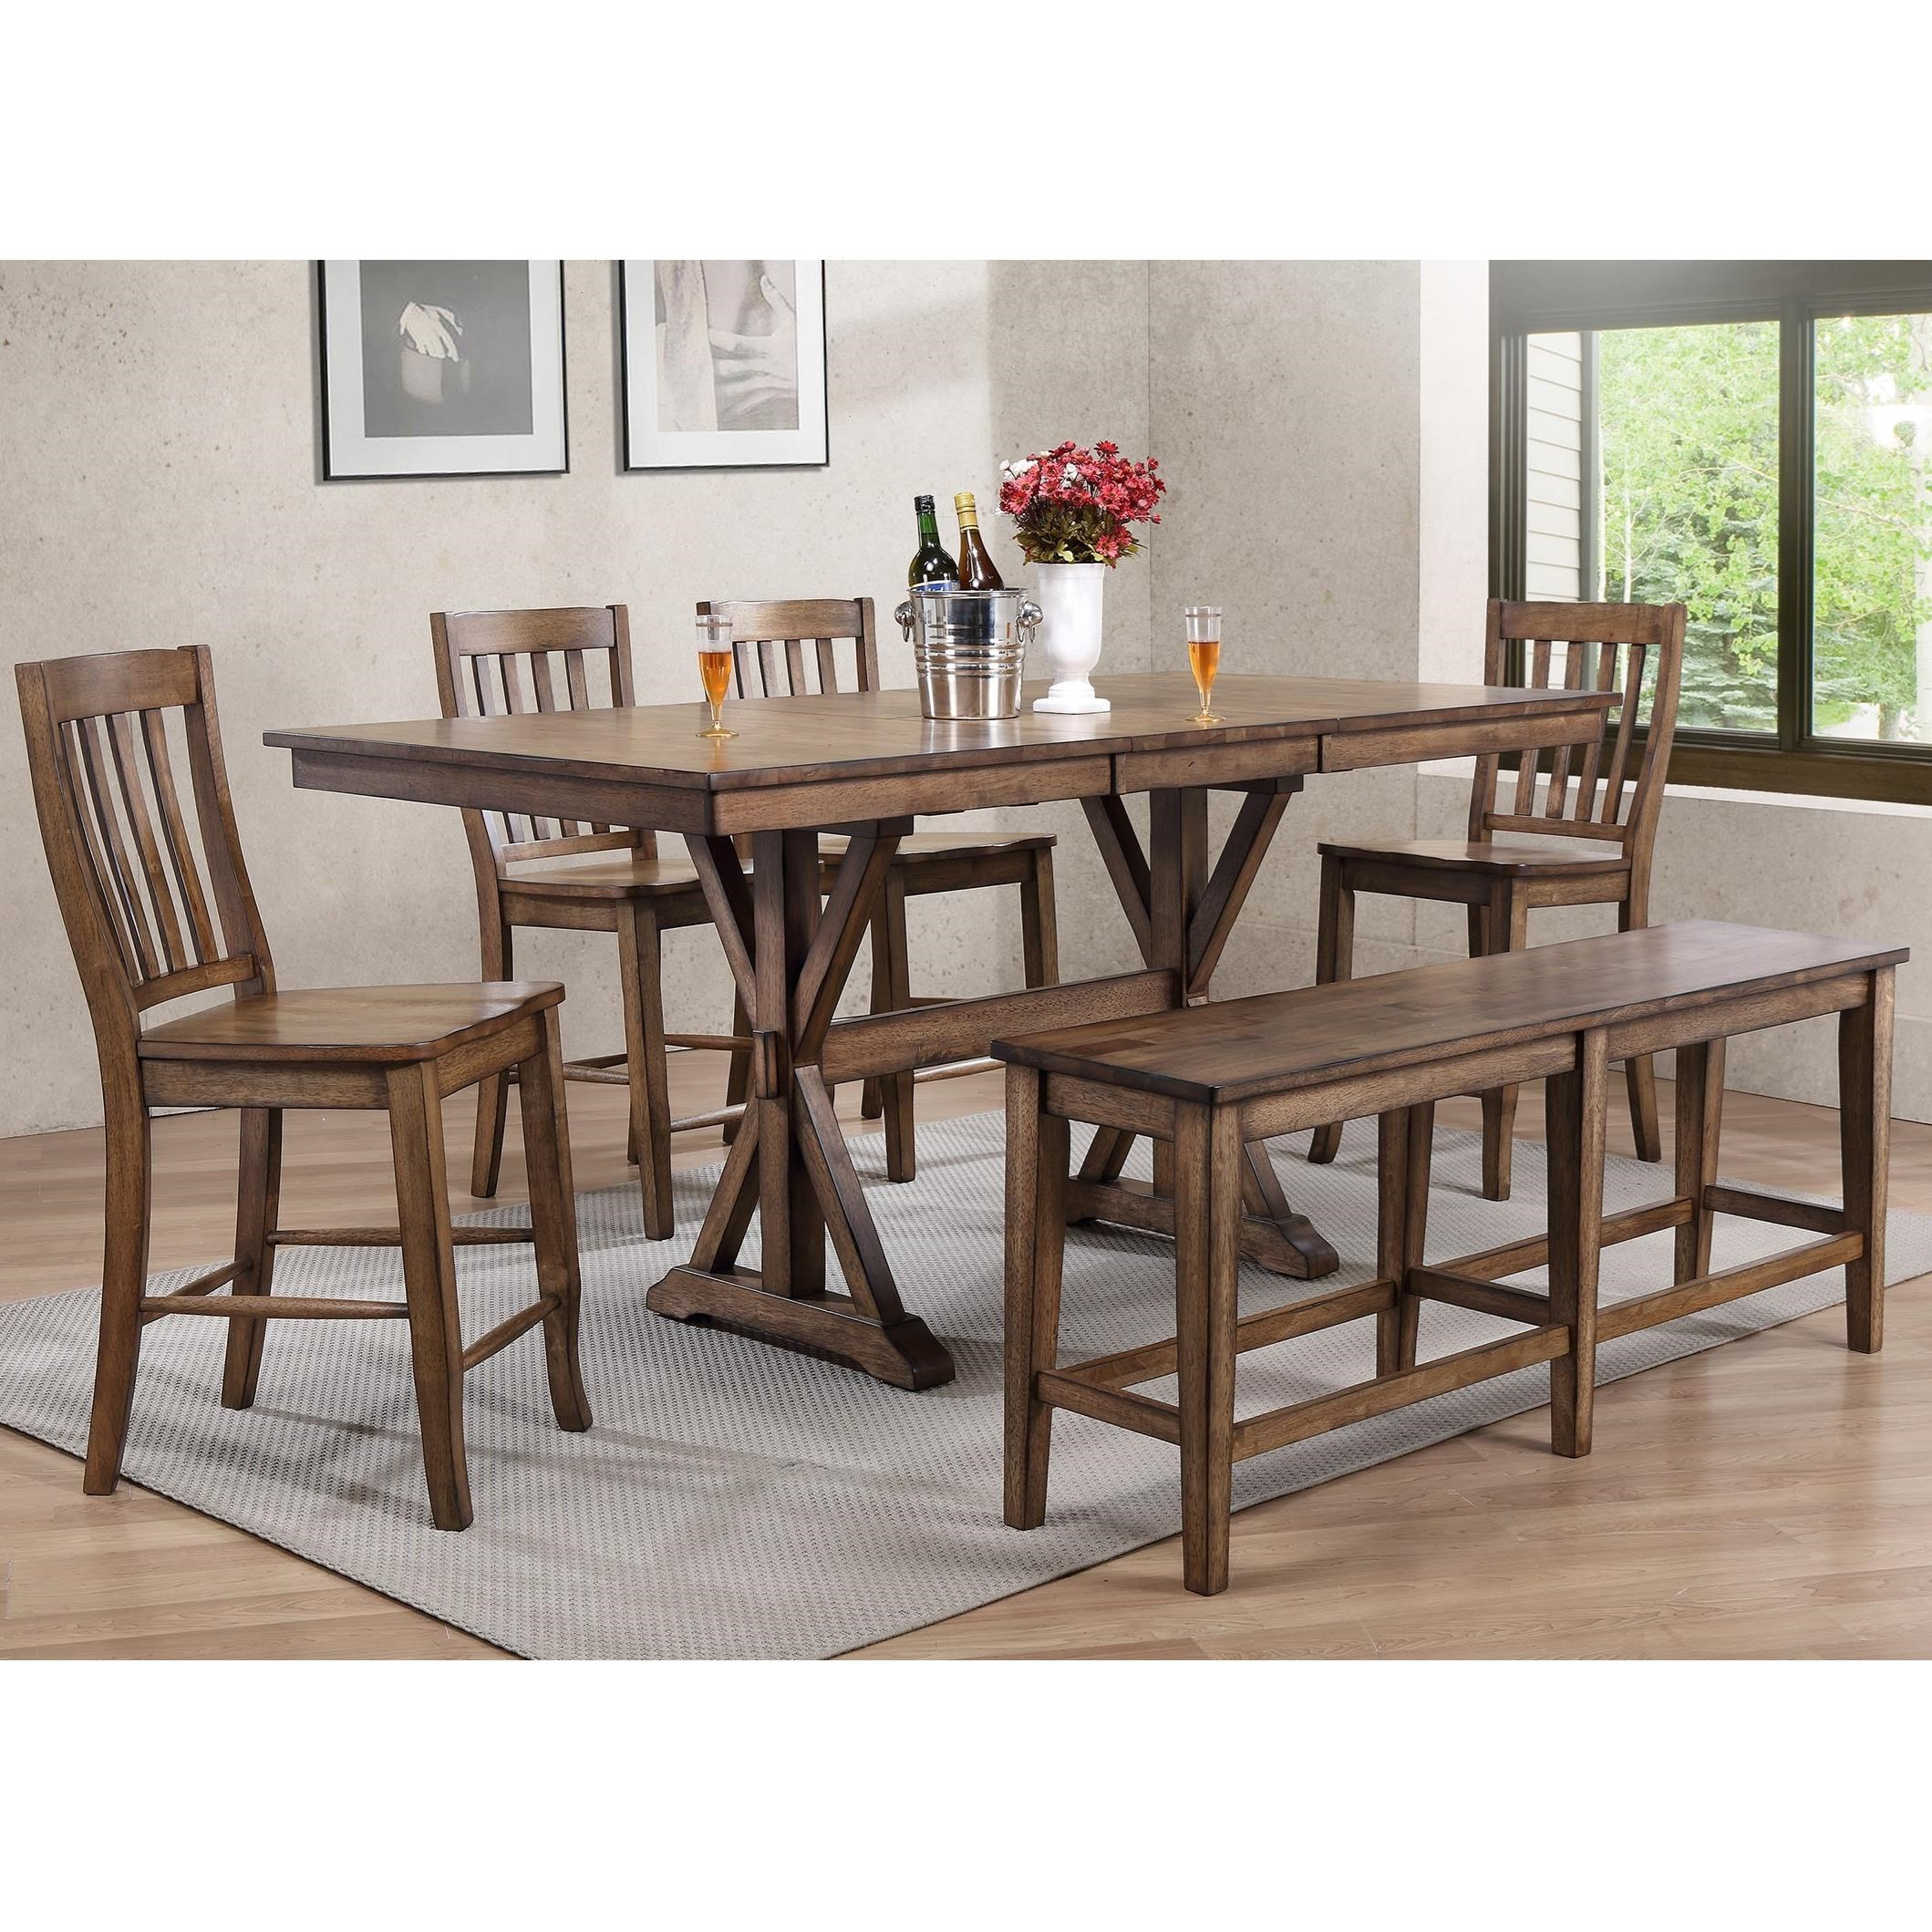 Where Is Winners Only Furniture Made: Winners Only Carmel 6 Piece Dining Set With Bench